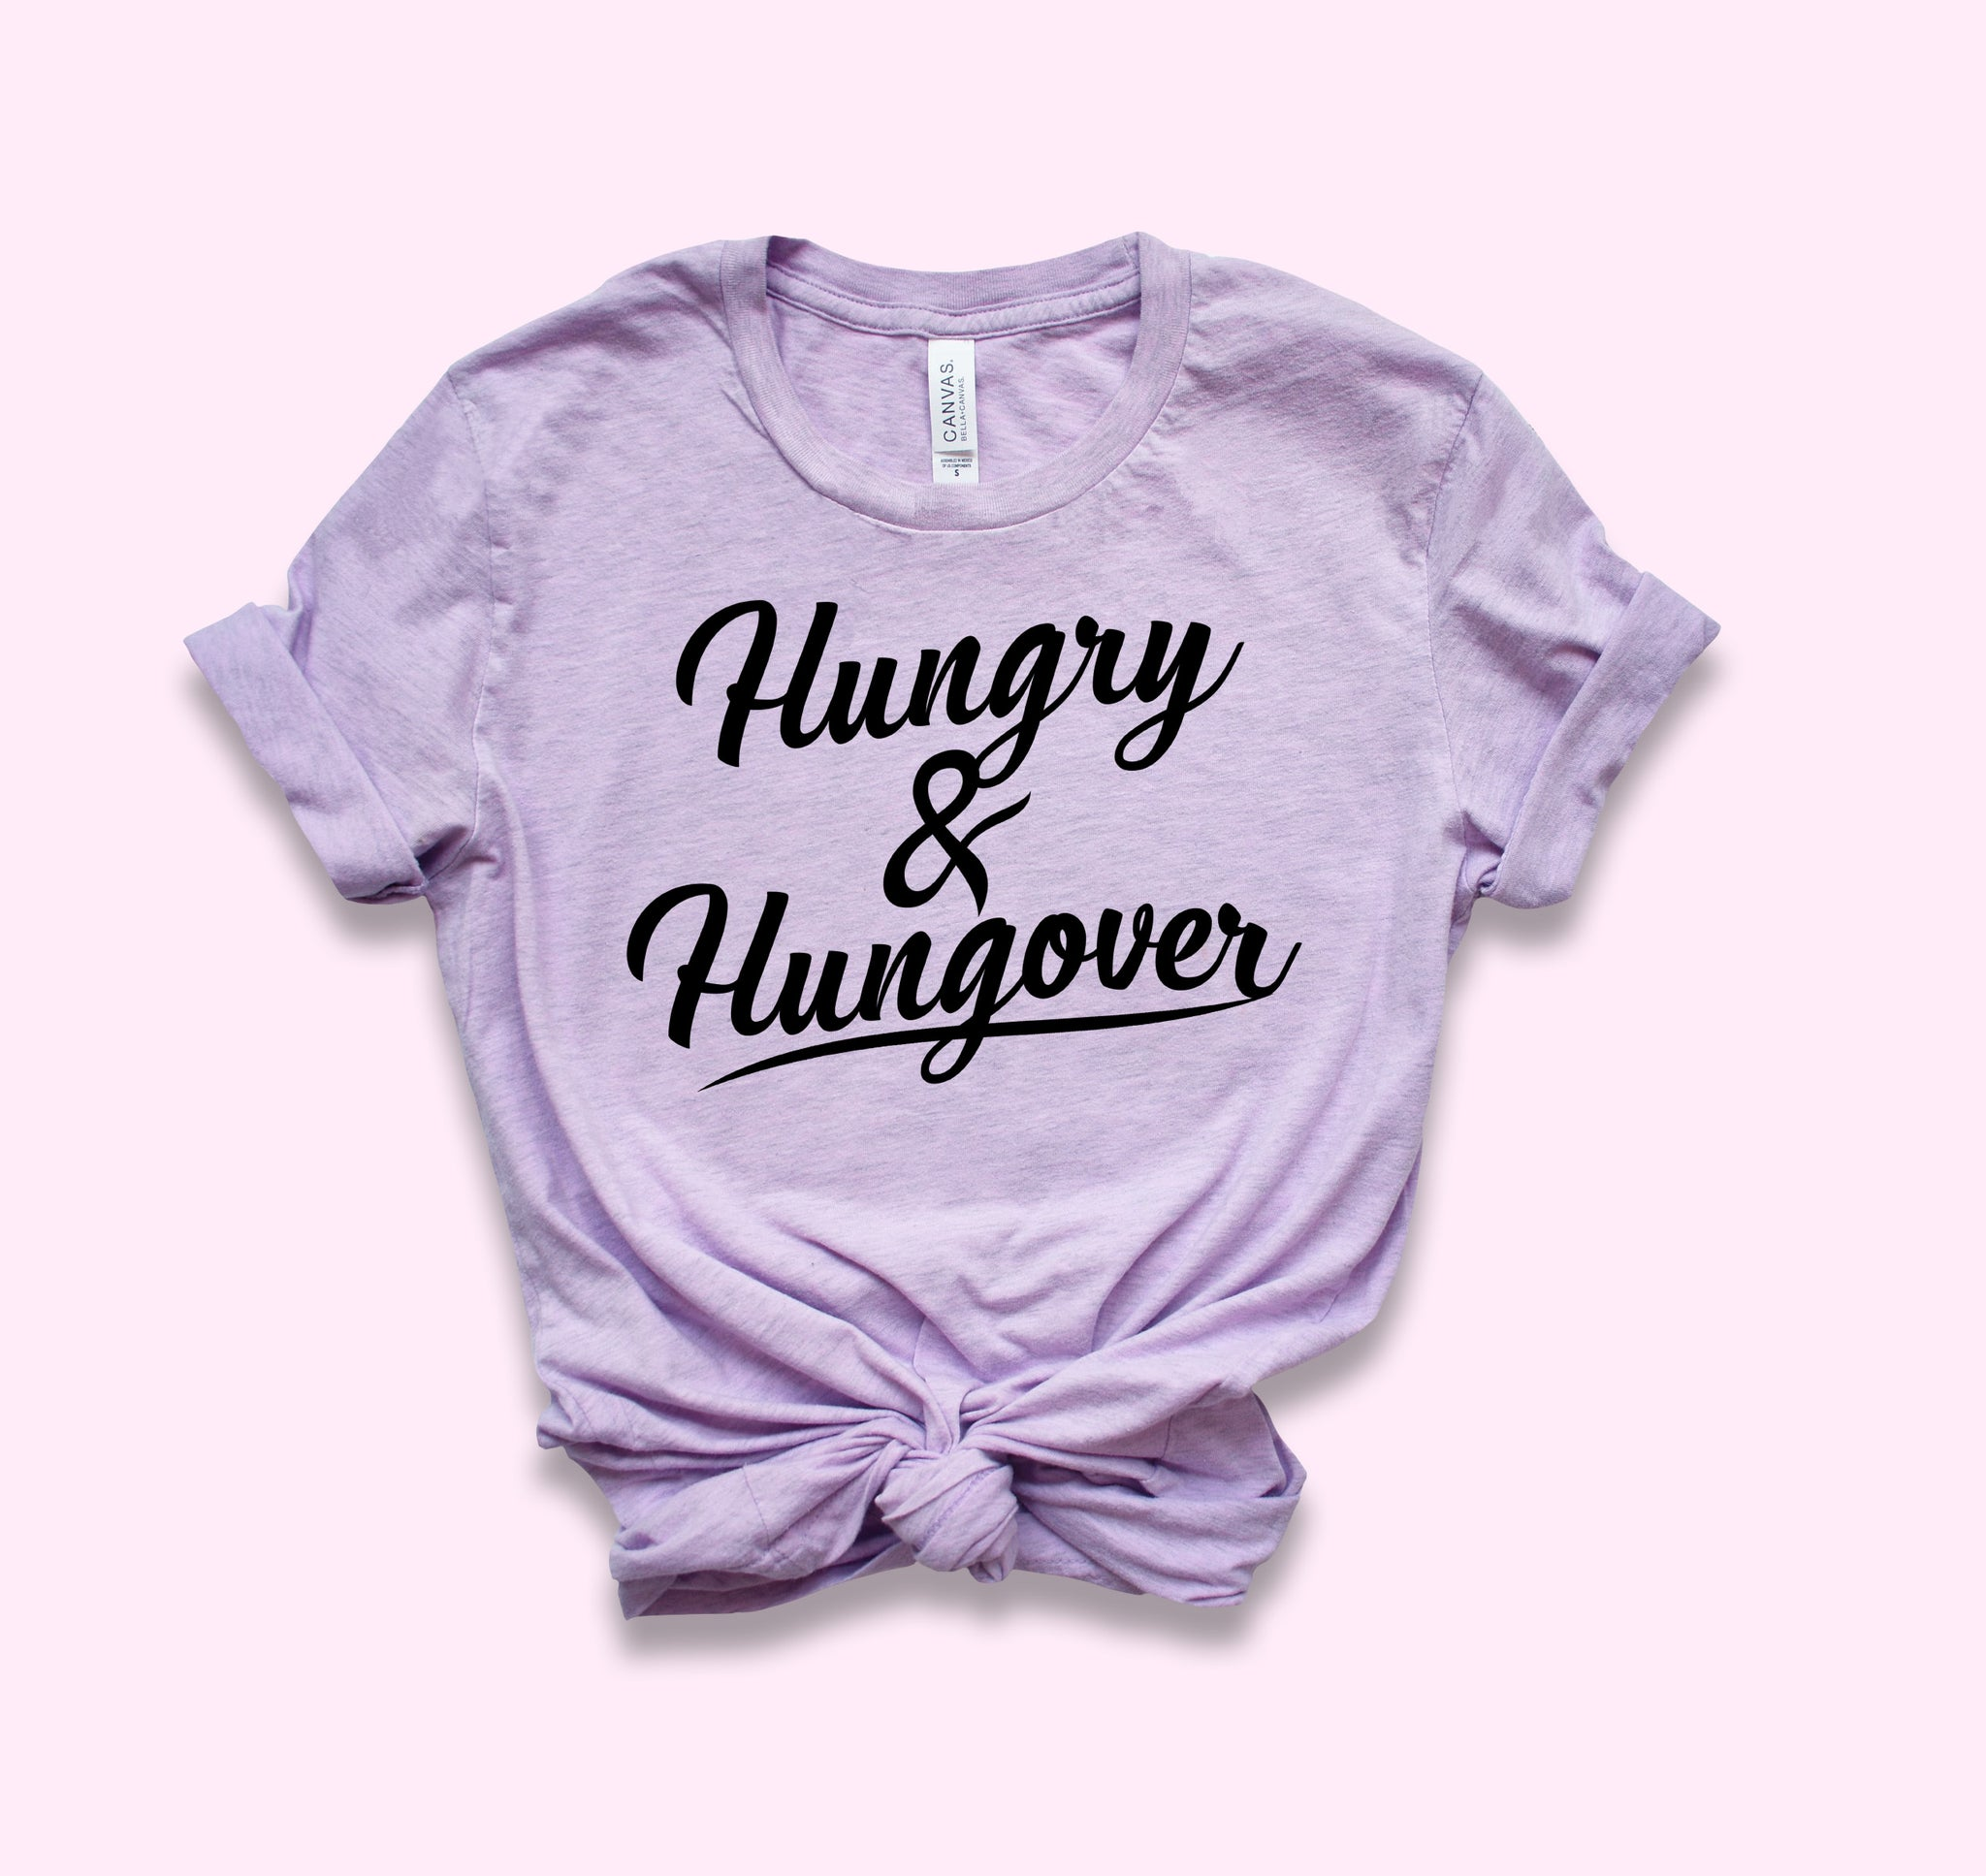 Hungry And Hungover Shirt